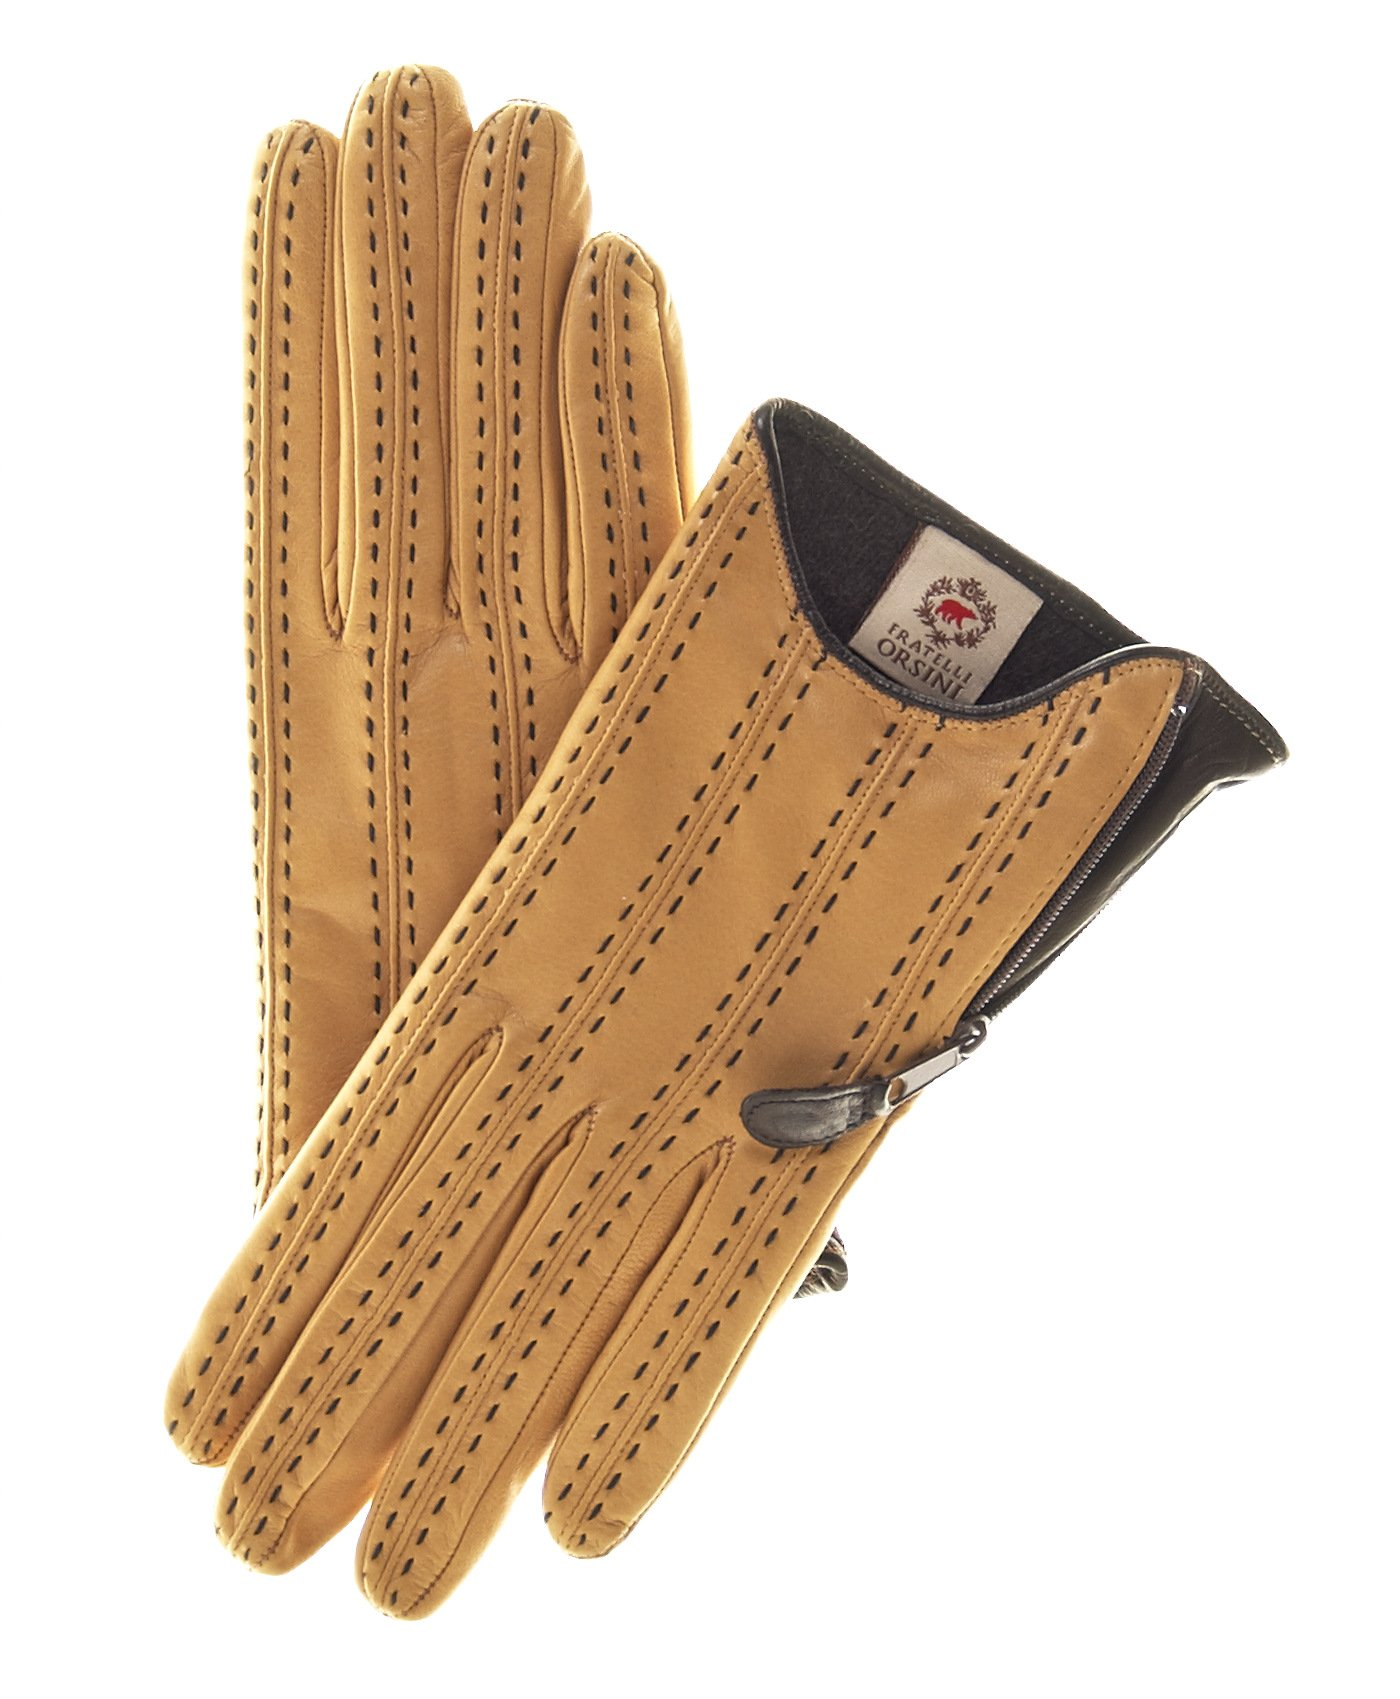 Fratelli Orsini Women's Italian Cashmere Lined Leather Gloves with Side Zipper Size 7 1/2 Color Camel